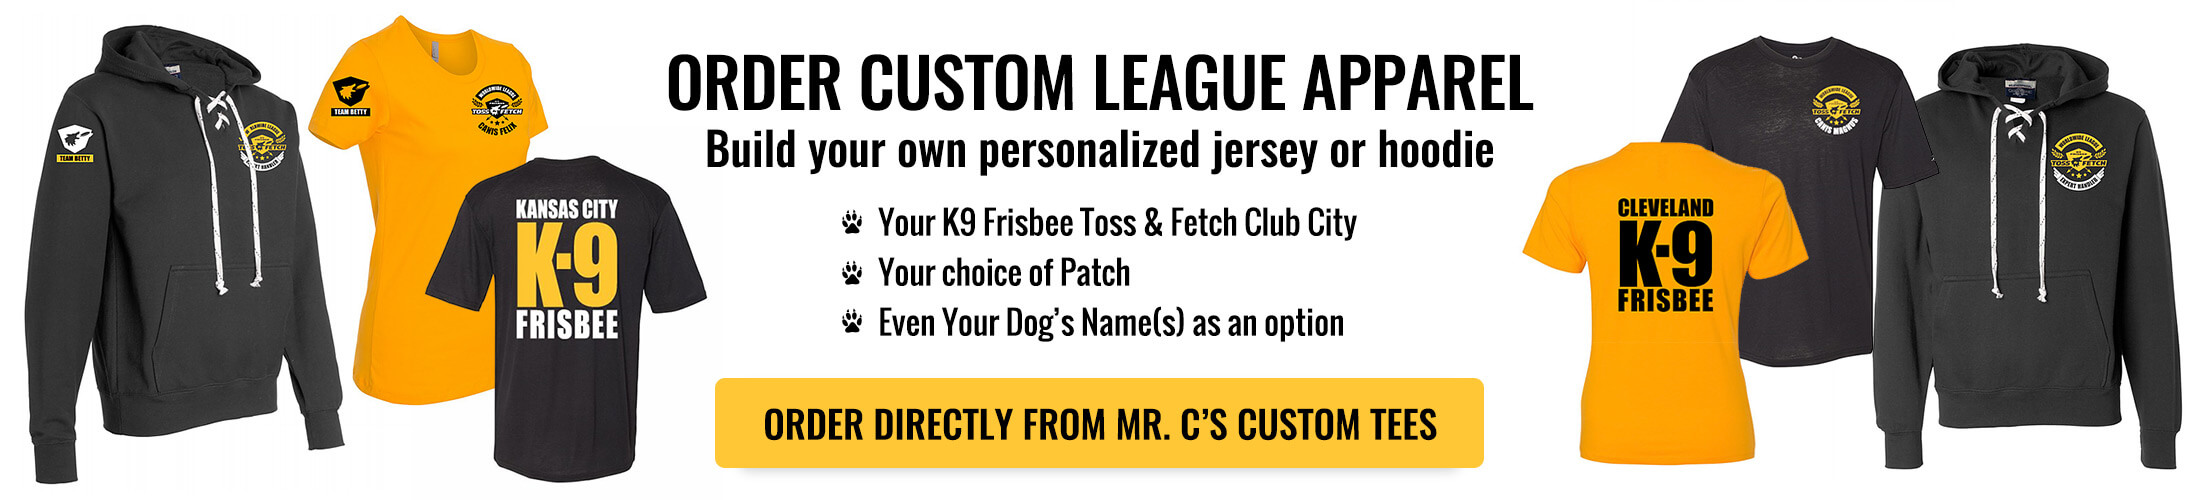 Order Custom League Apparel